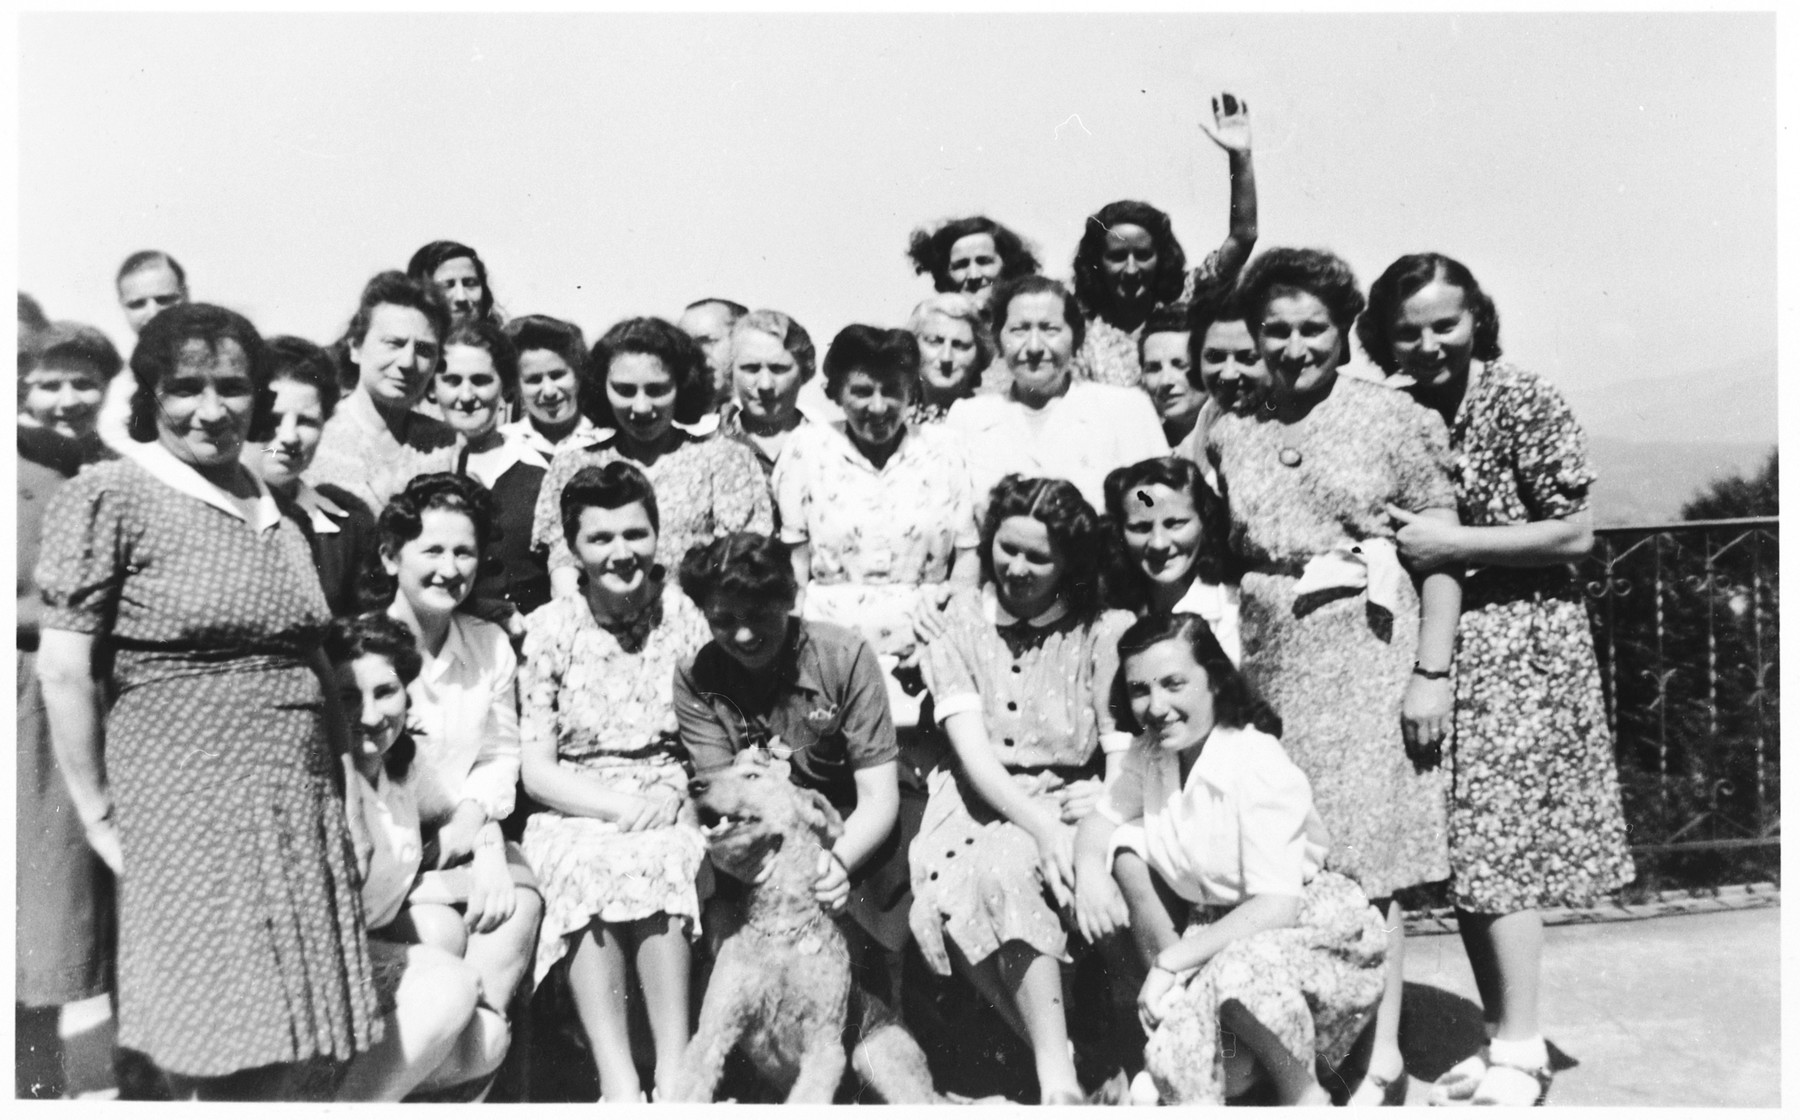 Group portrait of Jewish prisoners in a refugee camp in Switzerland where Rosa was briefly interned.